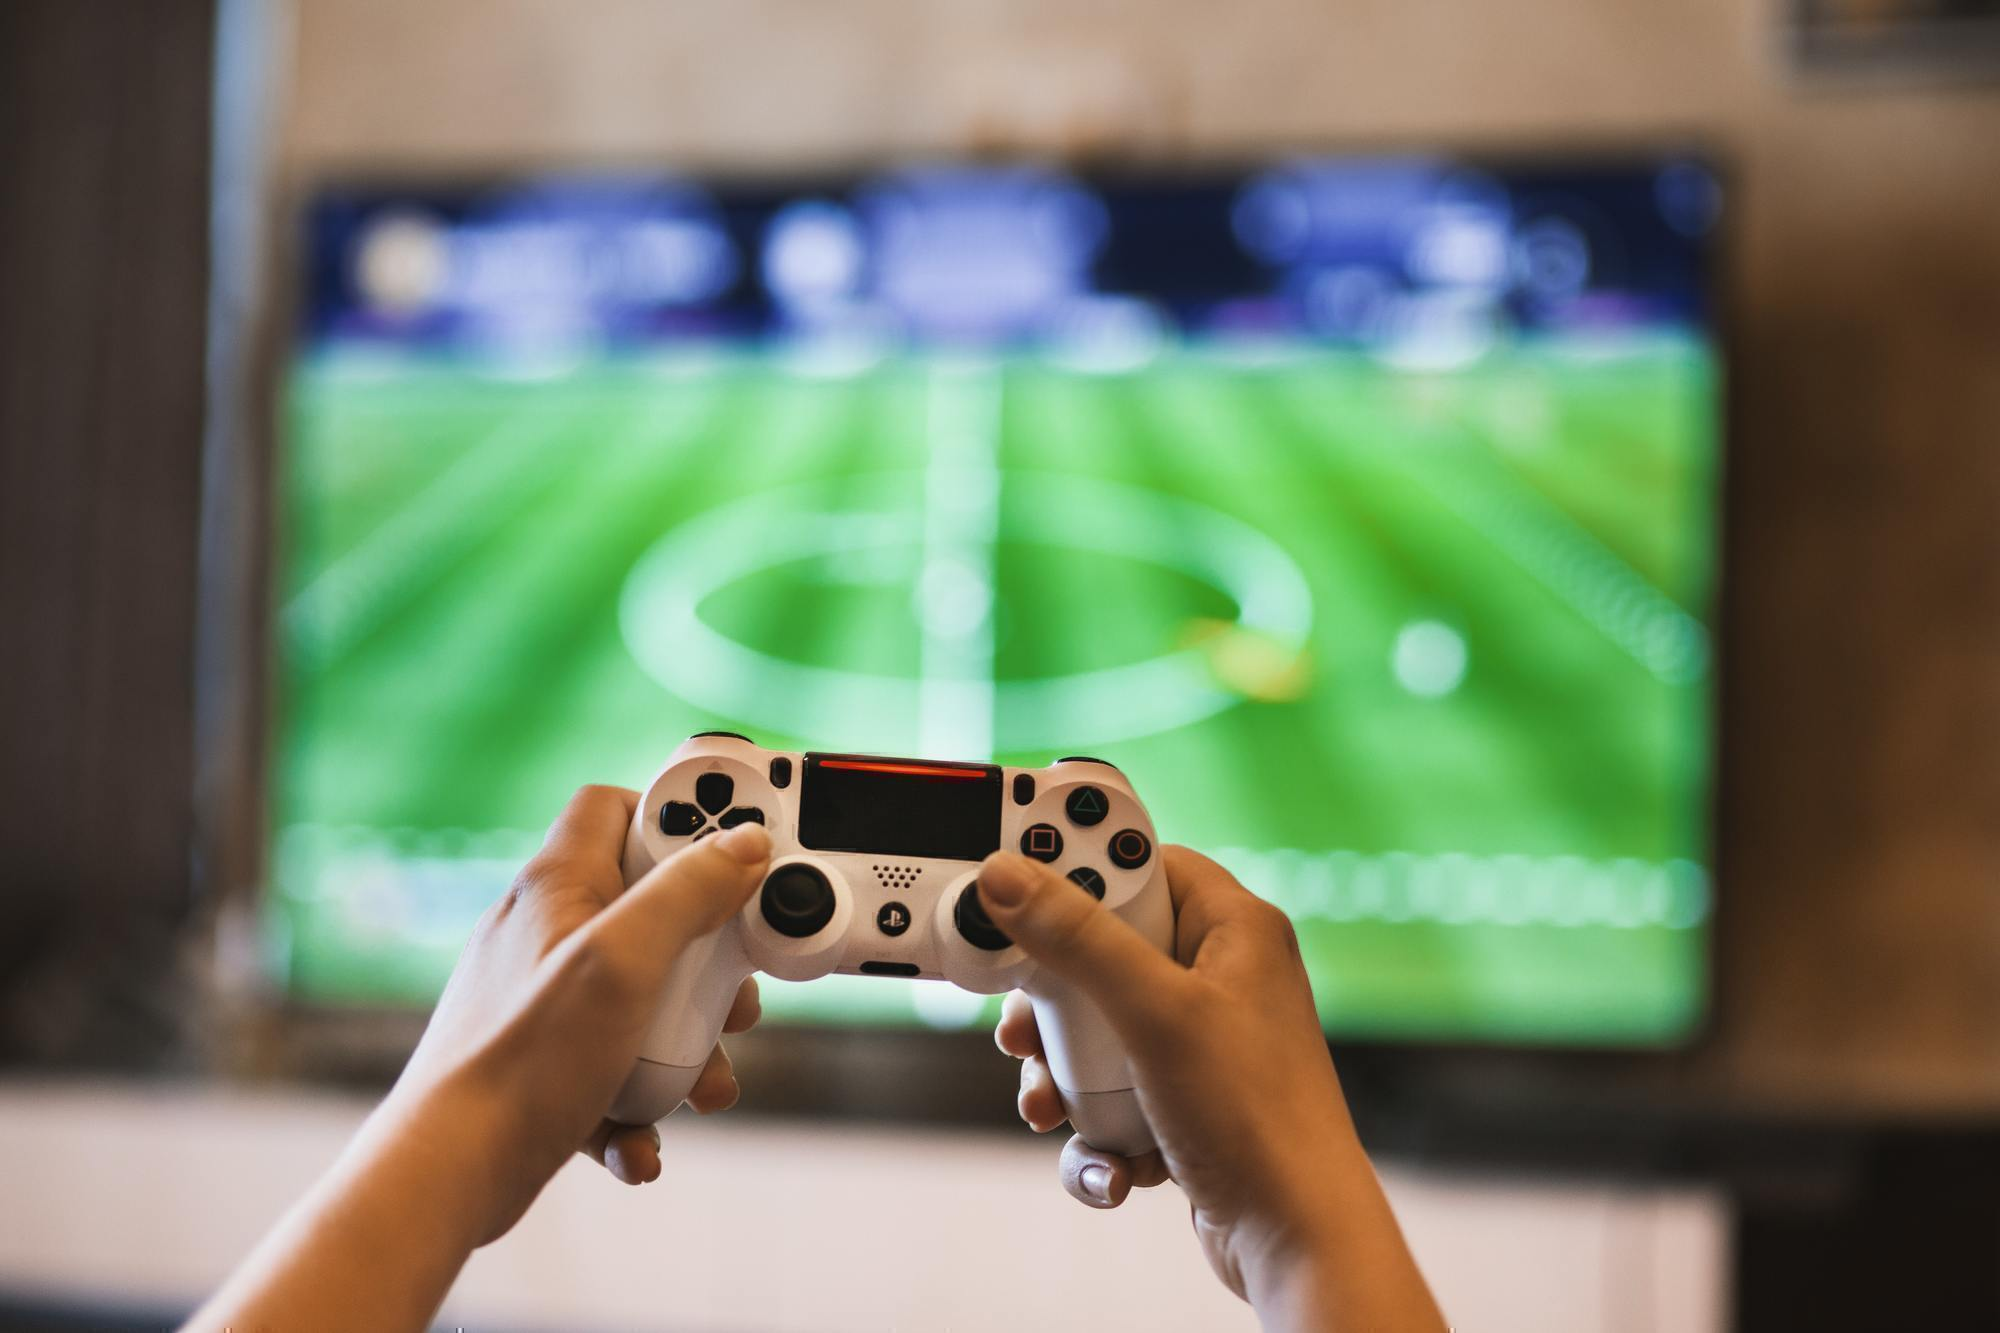 a person holds a video game controller in front of a television